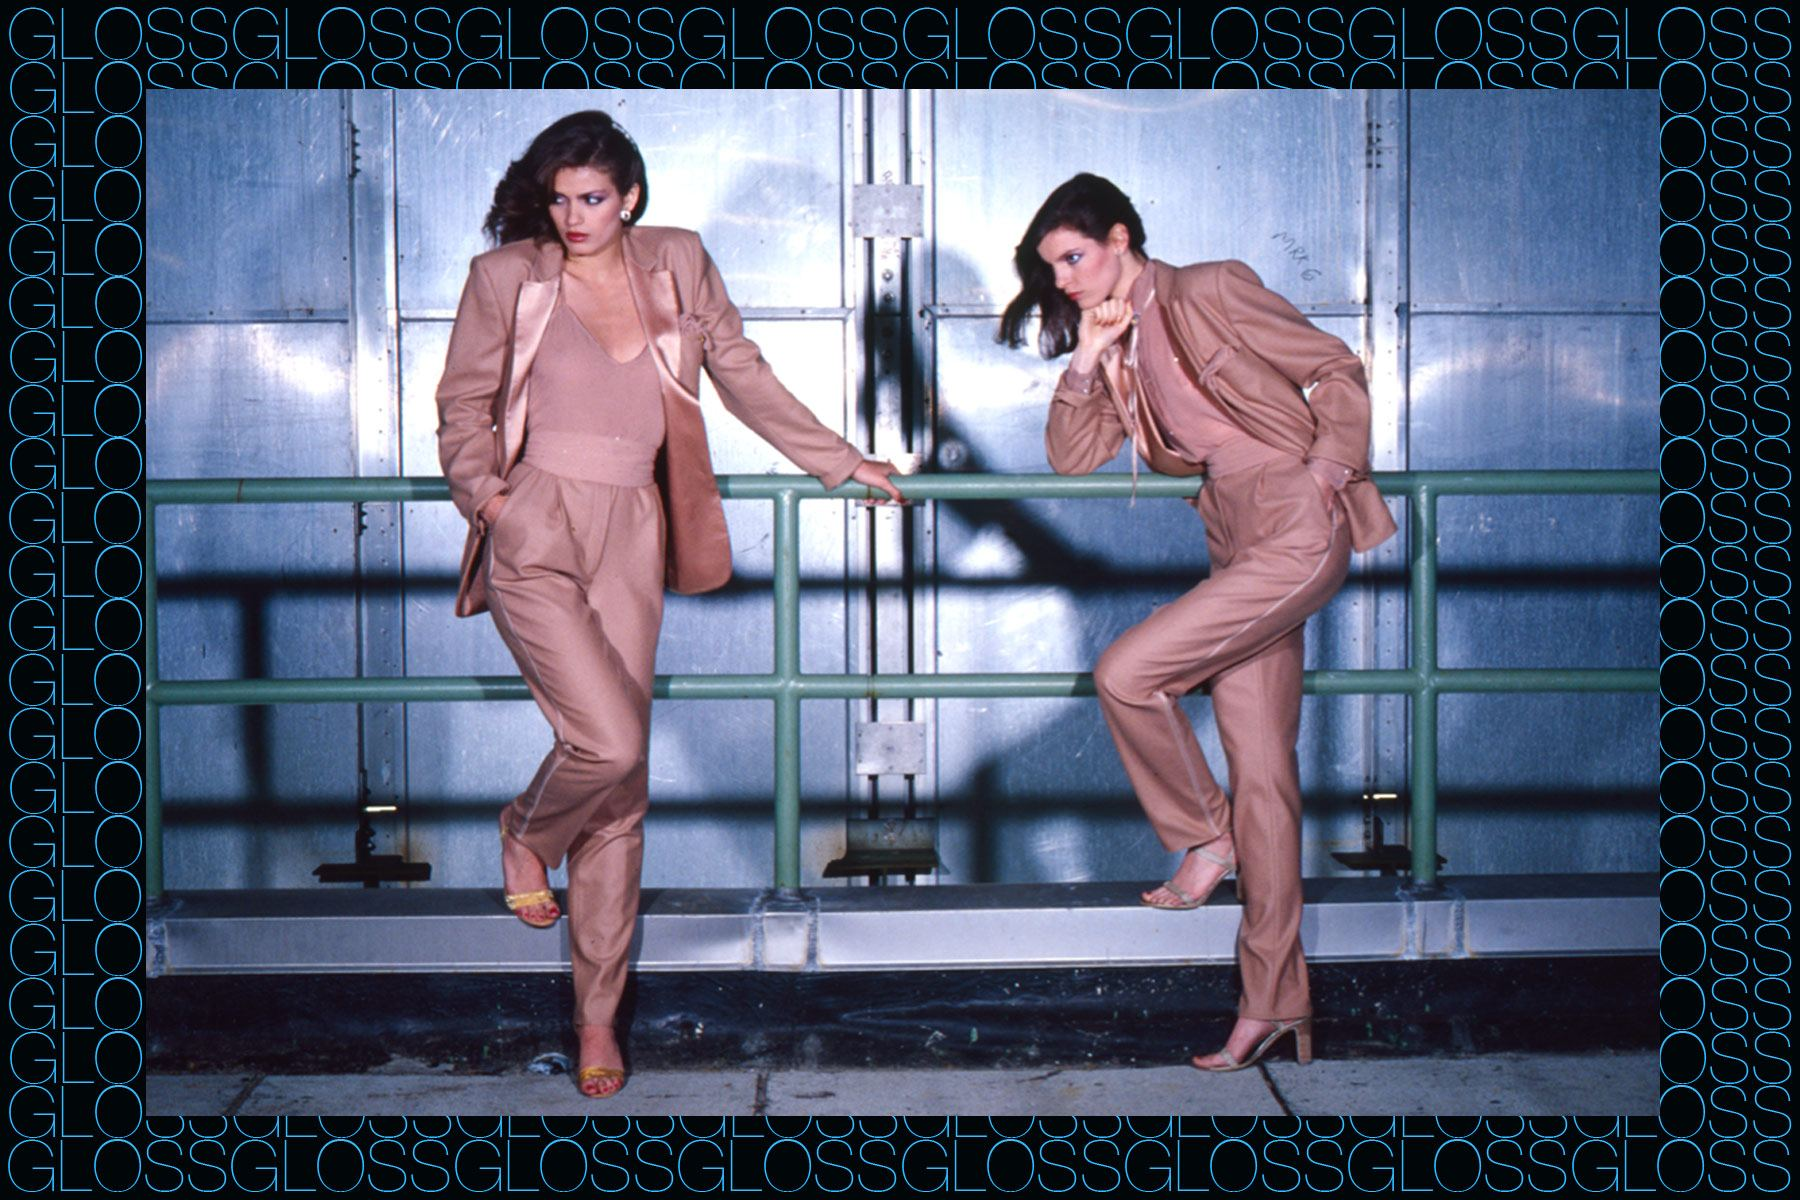 Superstar model Gia Carangi photographed by the late great fashion photographer Chris von Wangenheim, featured in GLOSS by Roger Padilha & Mauricio Padilha. Ponyboy magazine NY.